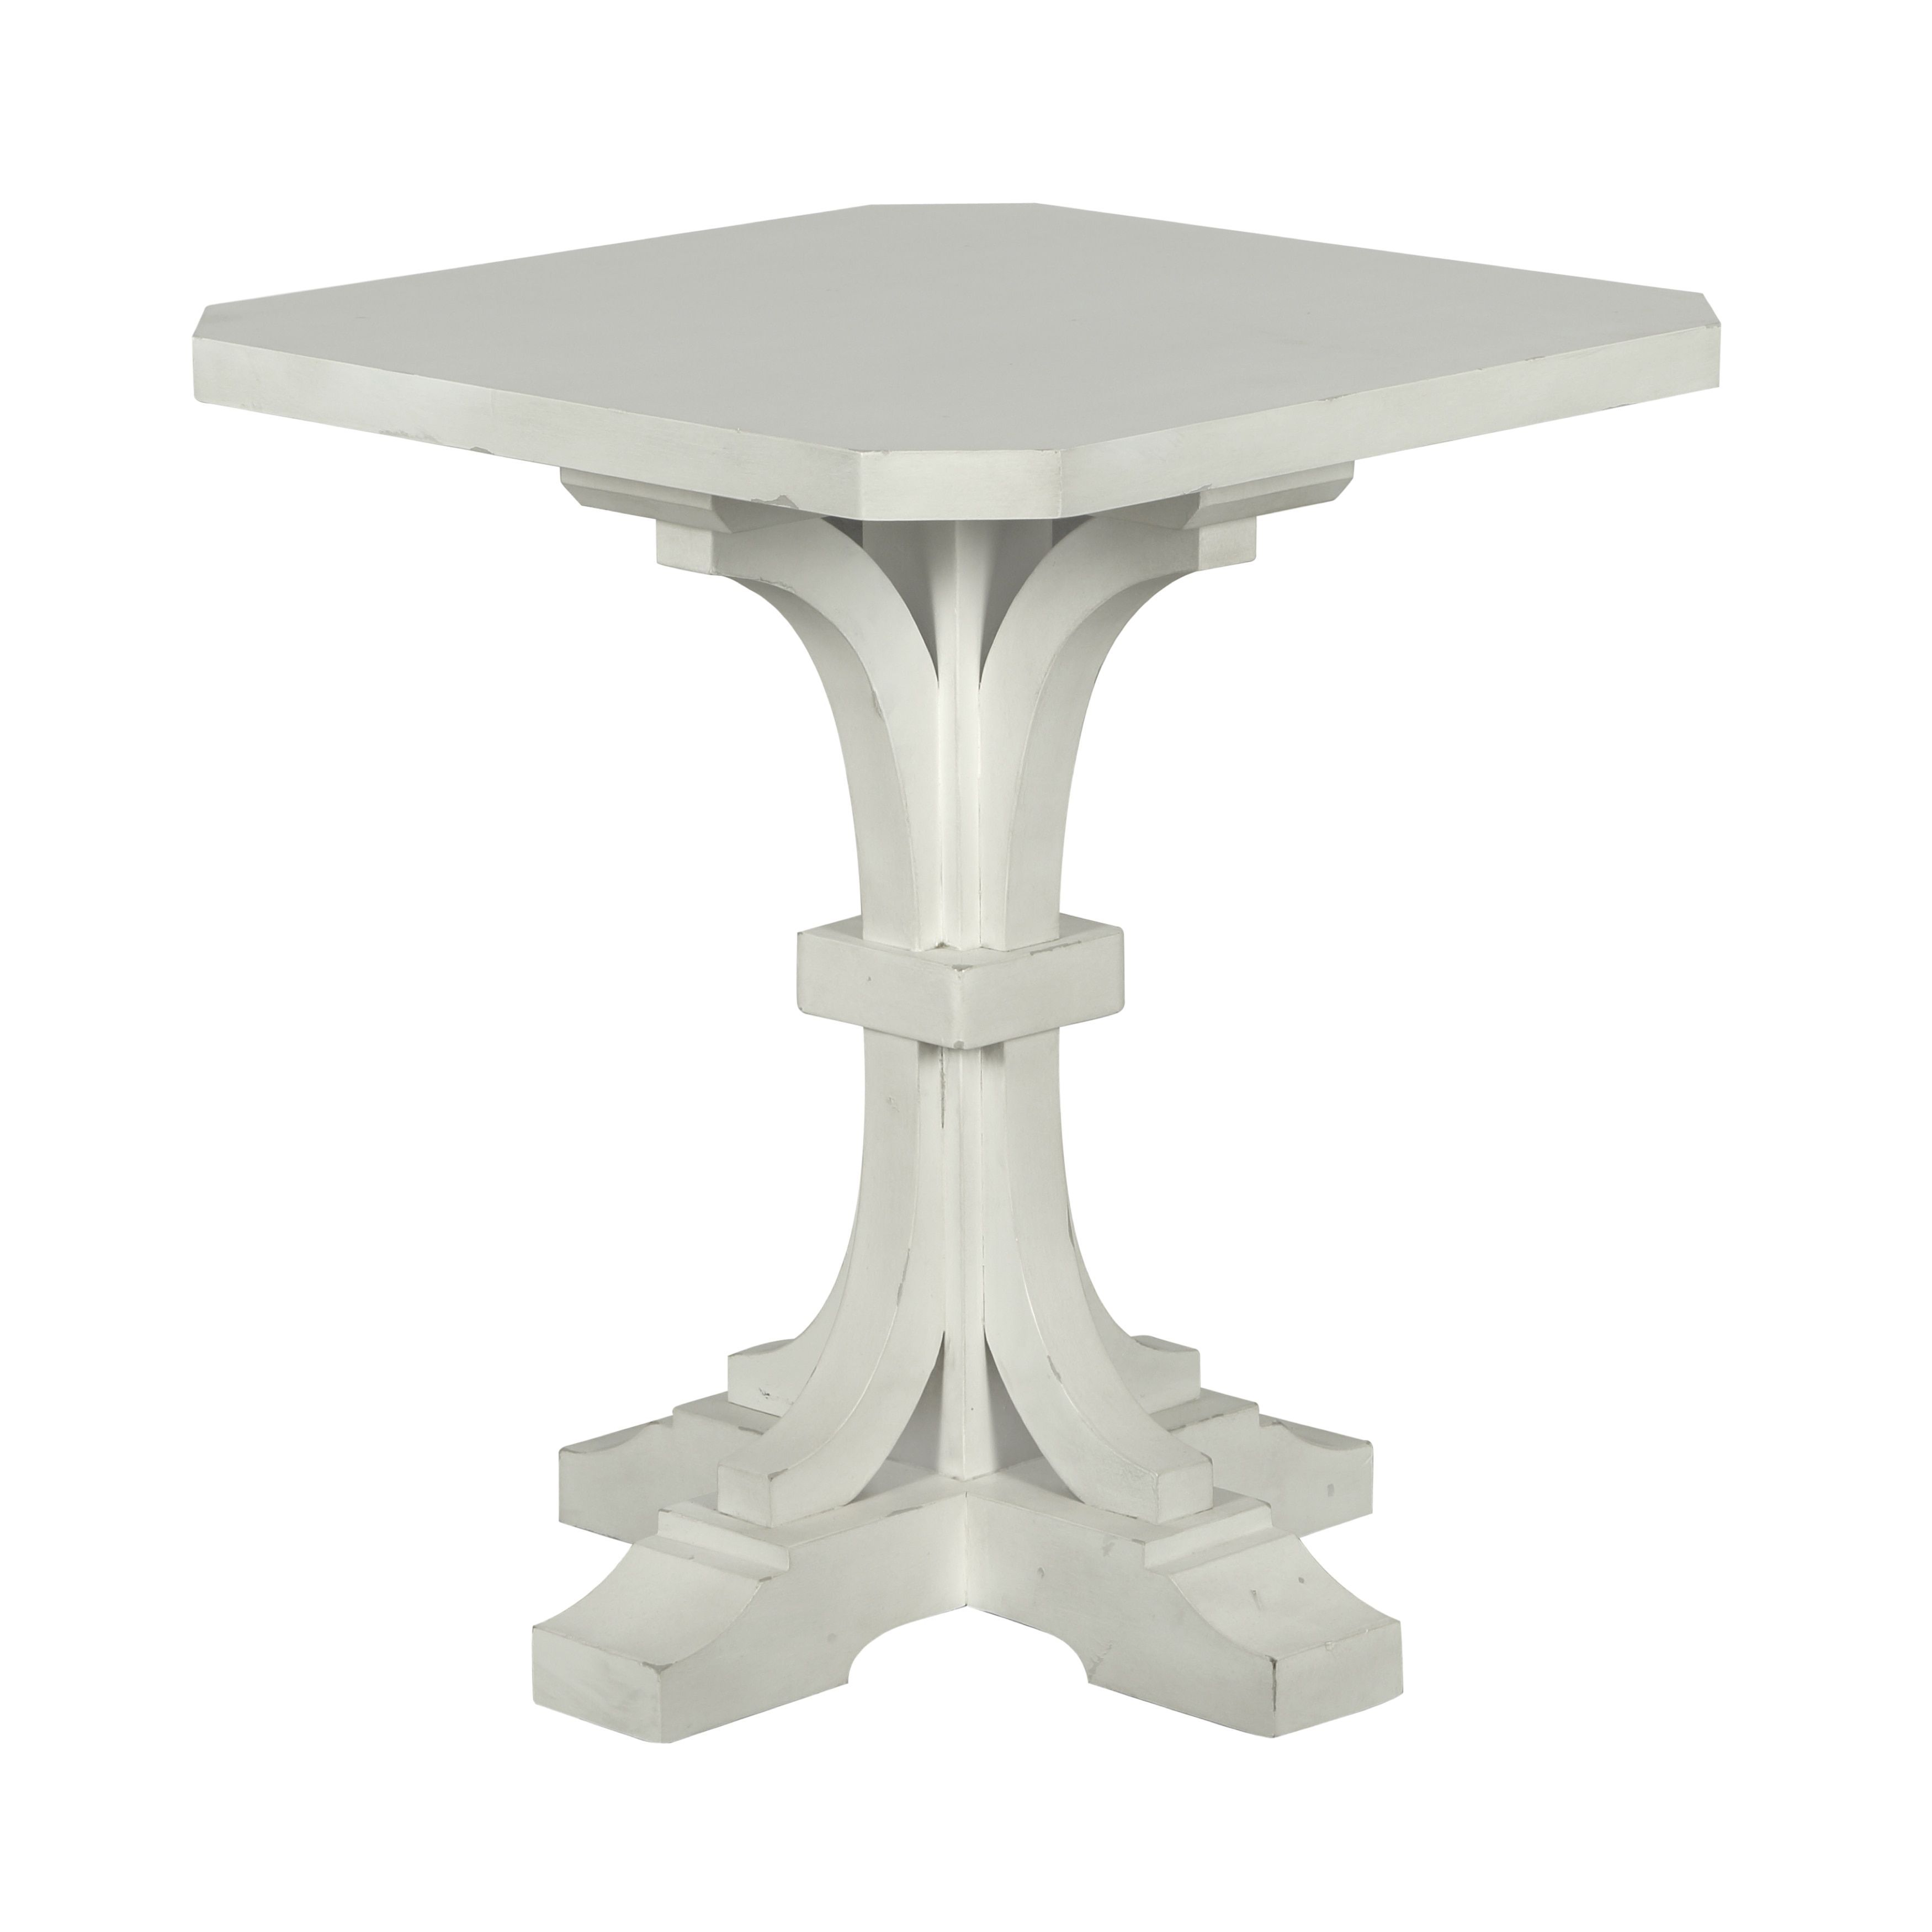 outdoor table pedestal round end marble tables furniture room off eryn antique whitewash corner white top metal accent small nero whitewashed distressed living the full size